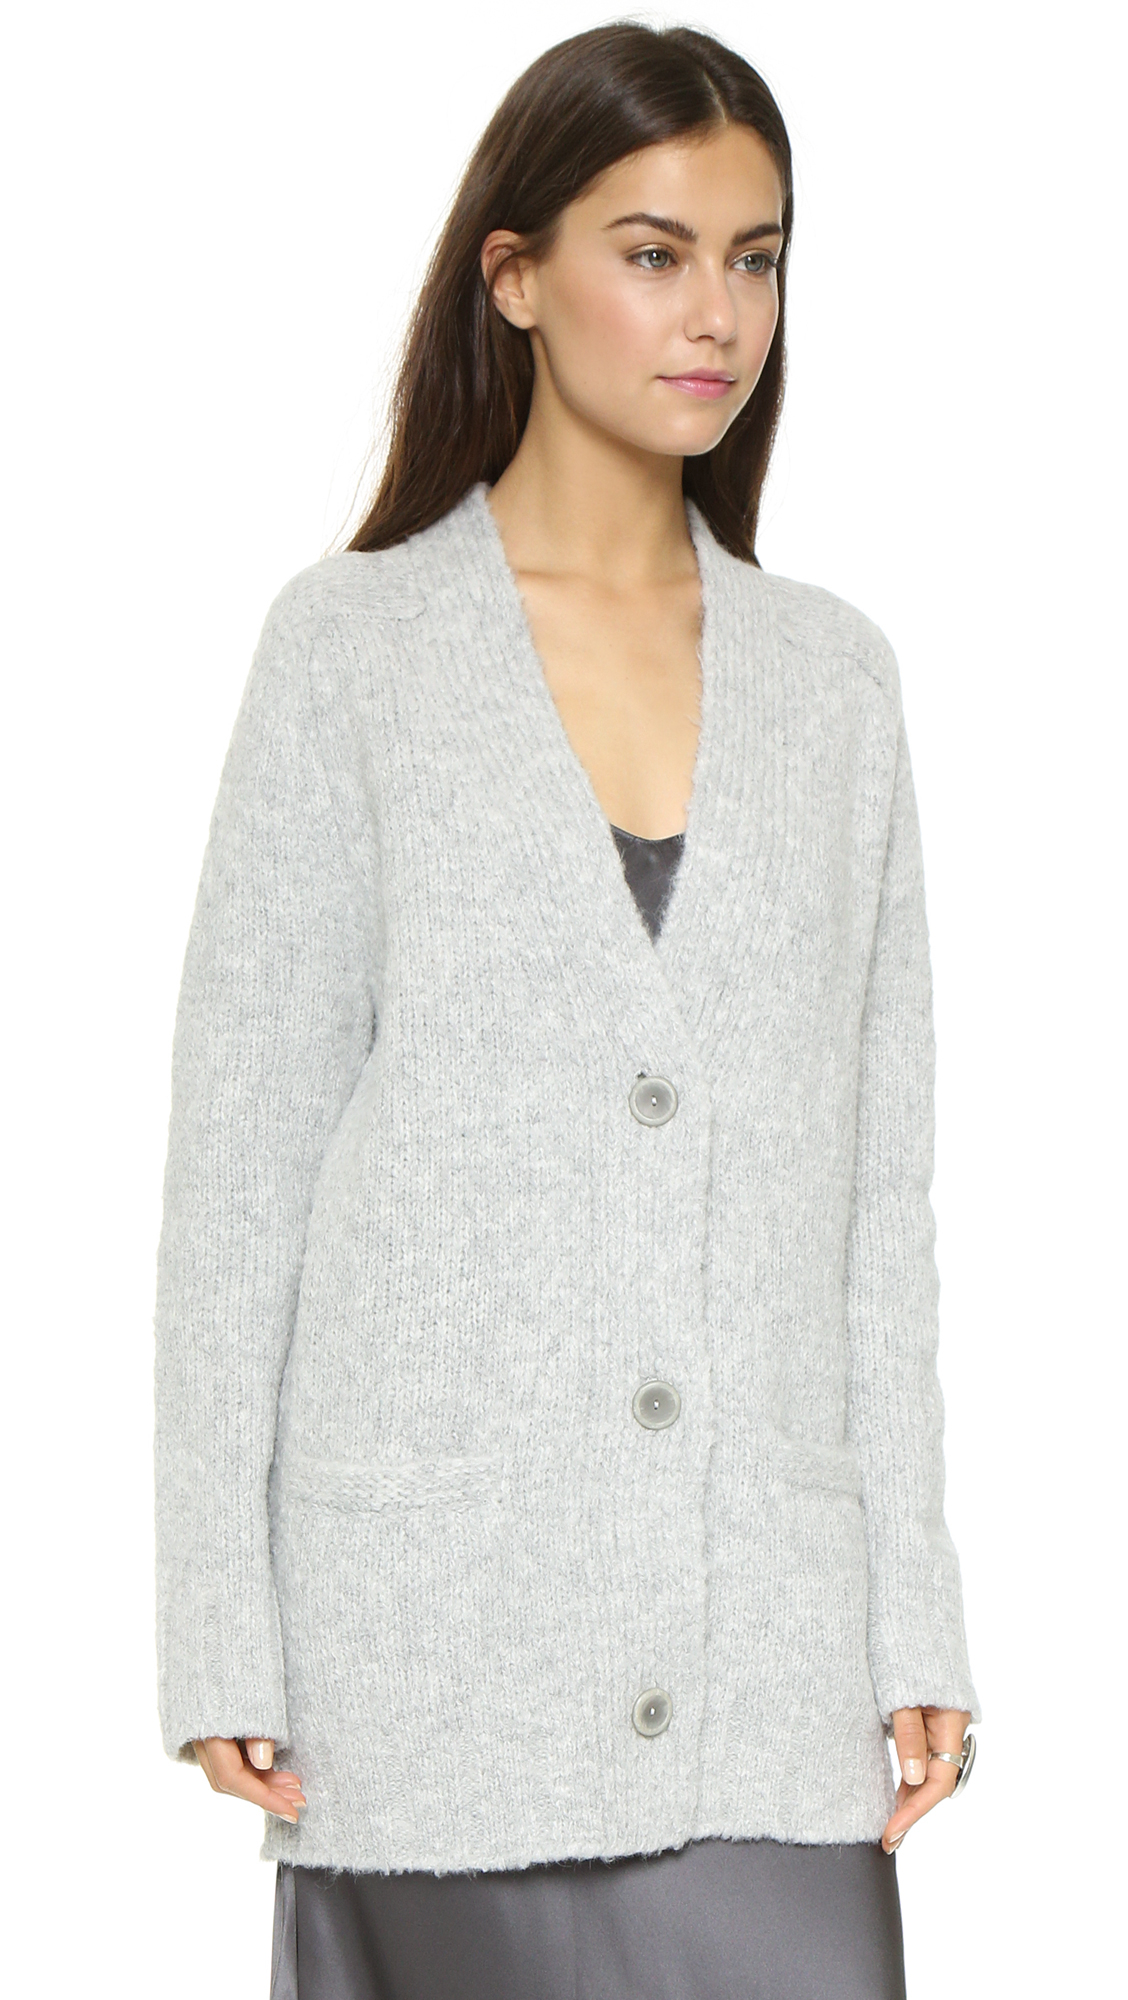 Nili lotan Ex Bf Cardigan - Pale Grey in Gray | Lyst